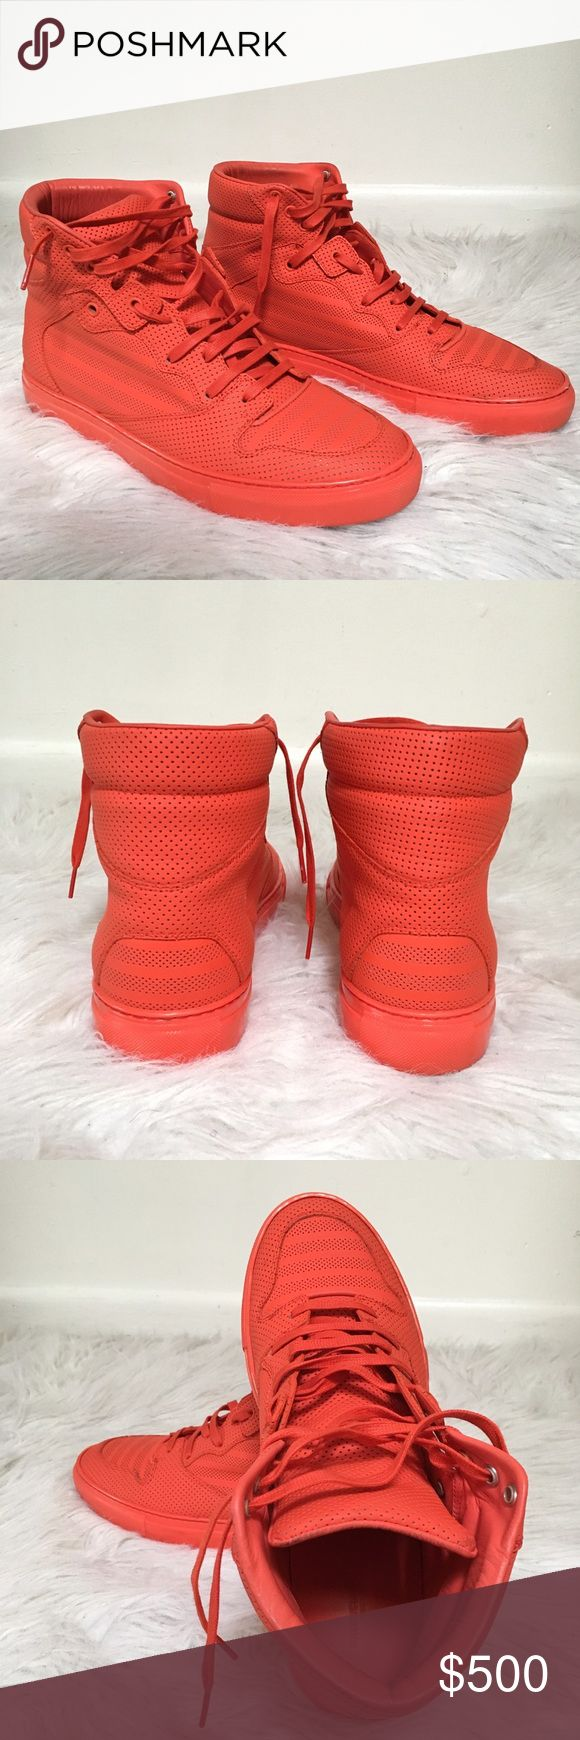 Balenciaga Men's Pleated High top sneakers in Red Worn once or twice, in pristine condition, comes without the shoe box. Fast shipping Balenciaga Shoes Sneakers